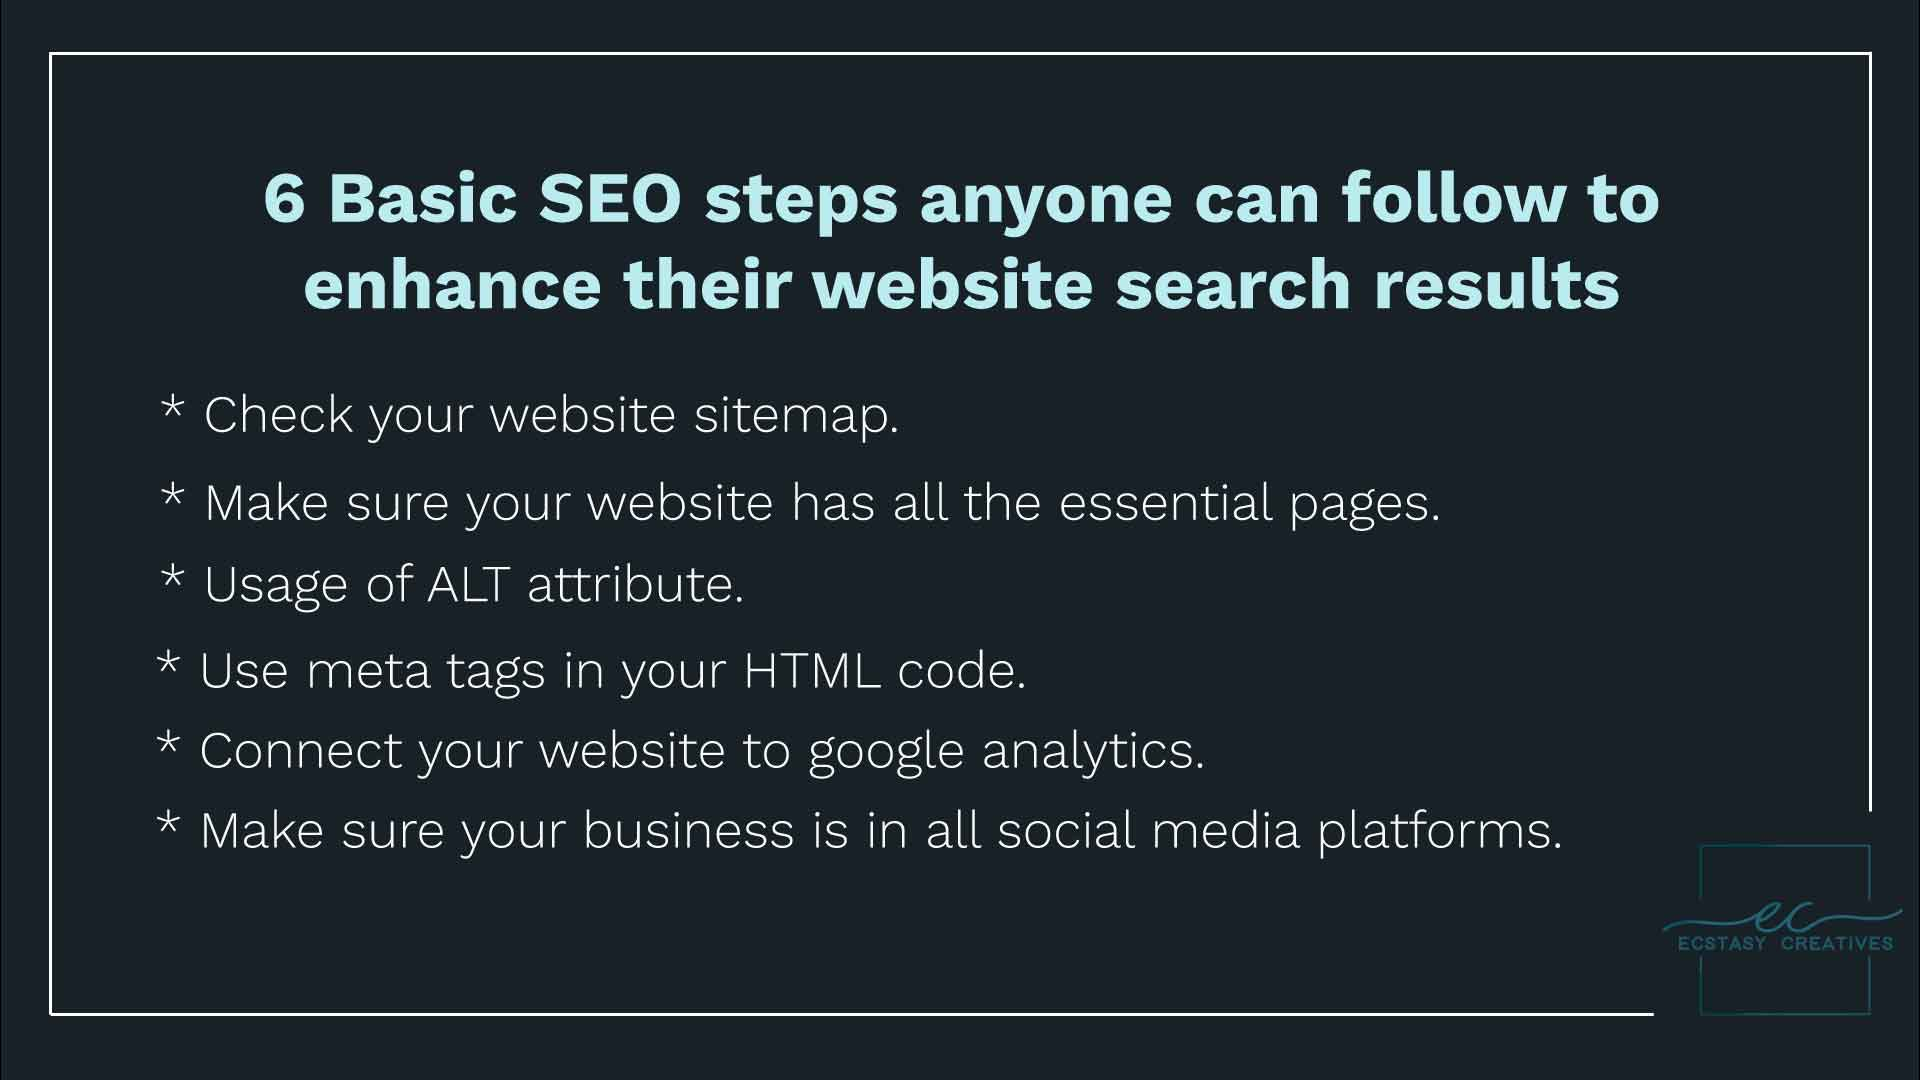 6 Basic SEO steps anyone can follow to enhance their website search results